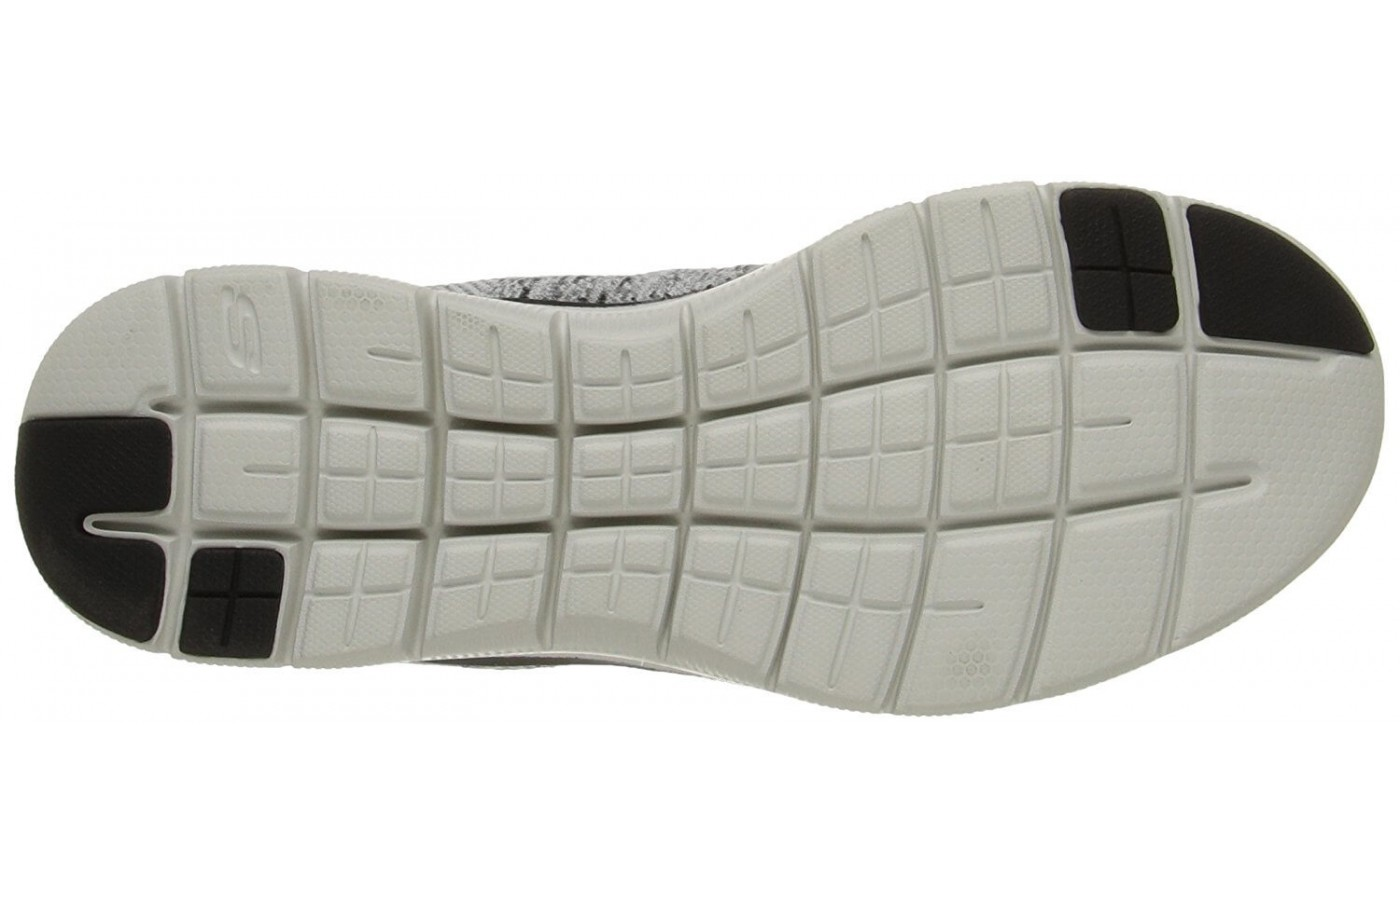 A bottom view of the Skechers Flex Advantage 2.0.